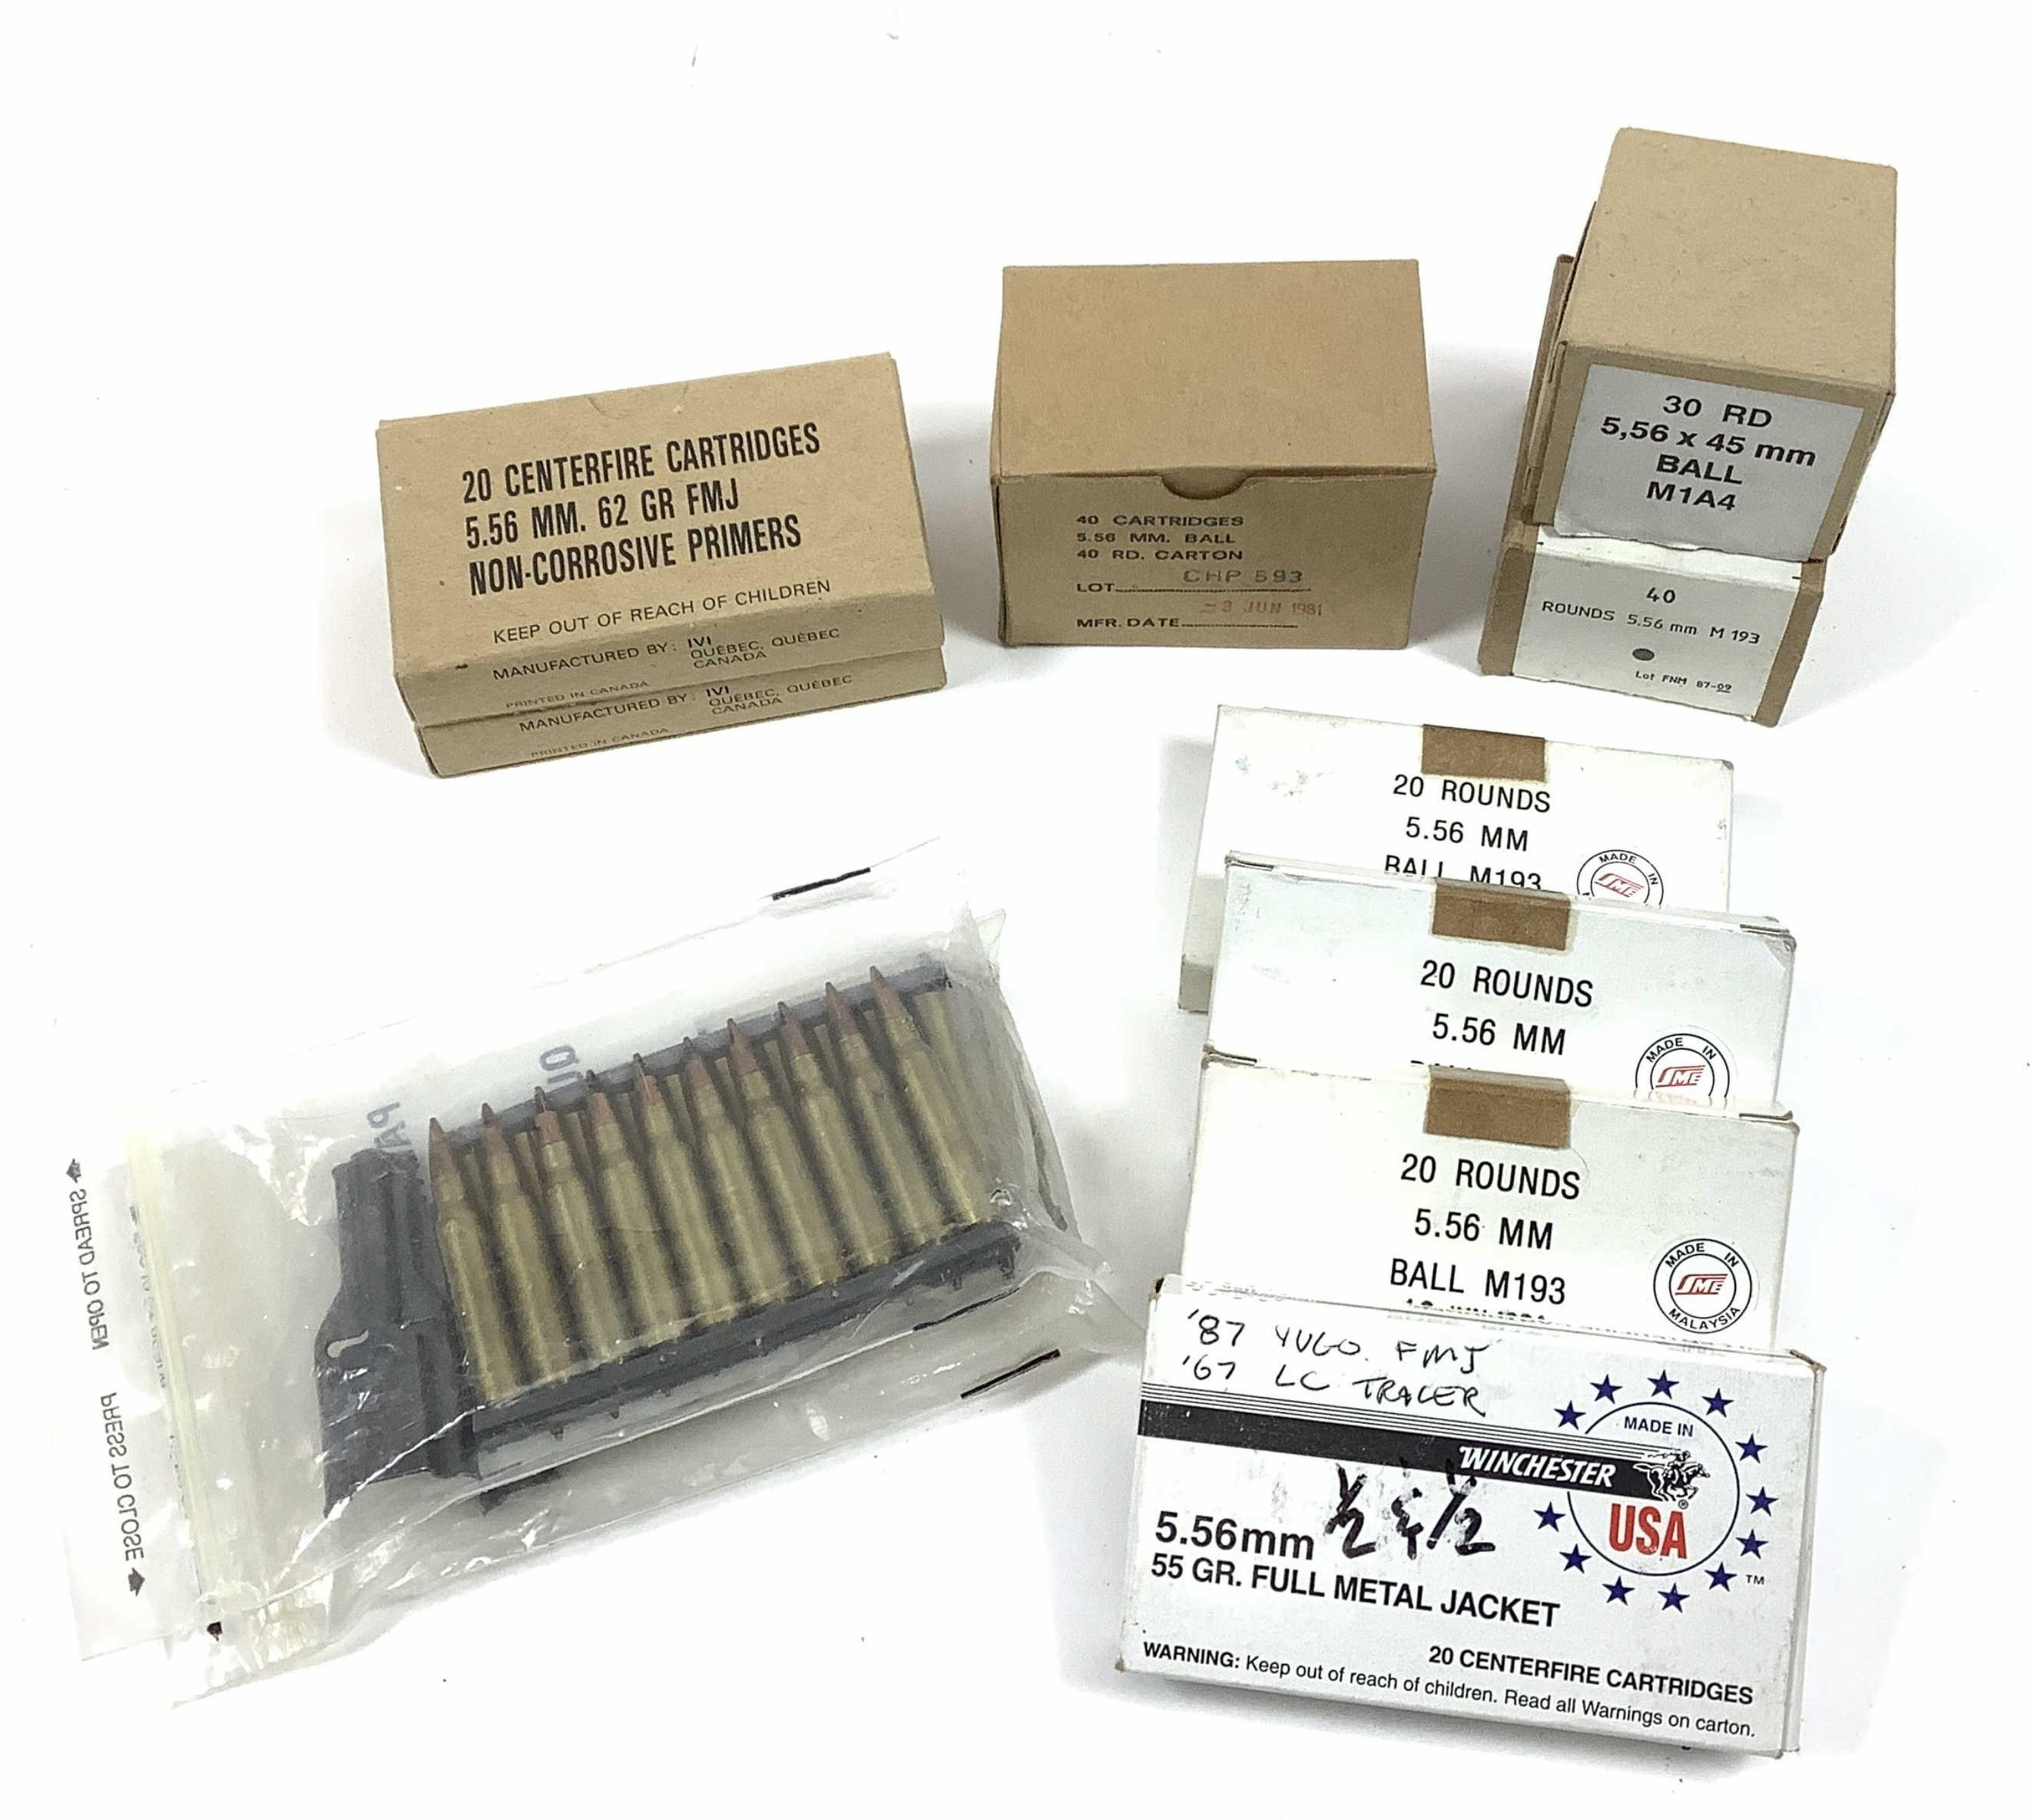 (270) Rds. 5.56 Ammunition, Ball M193